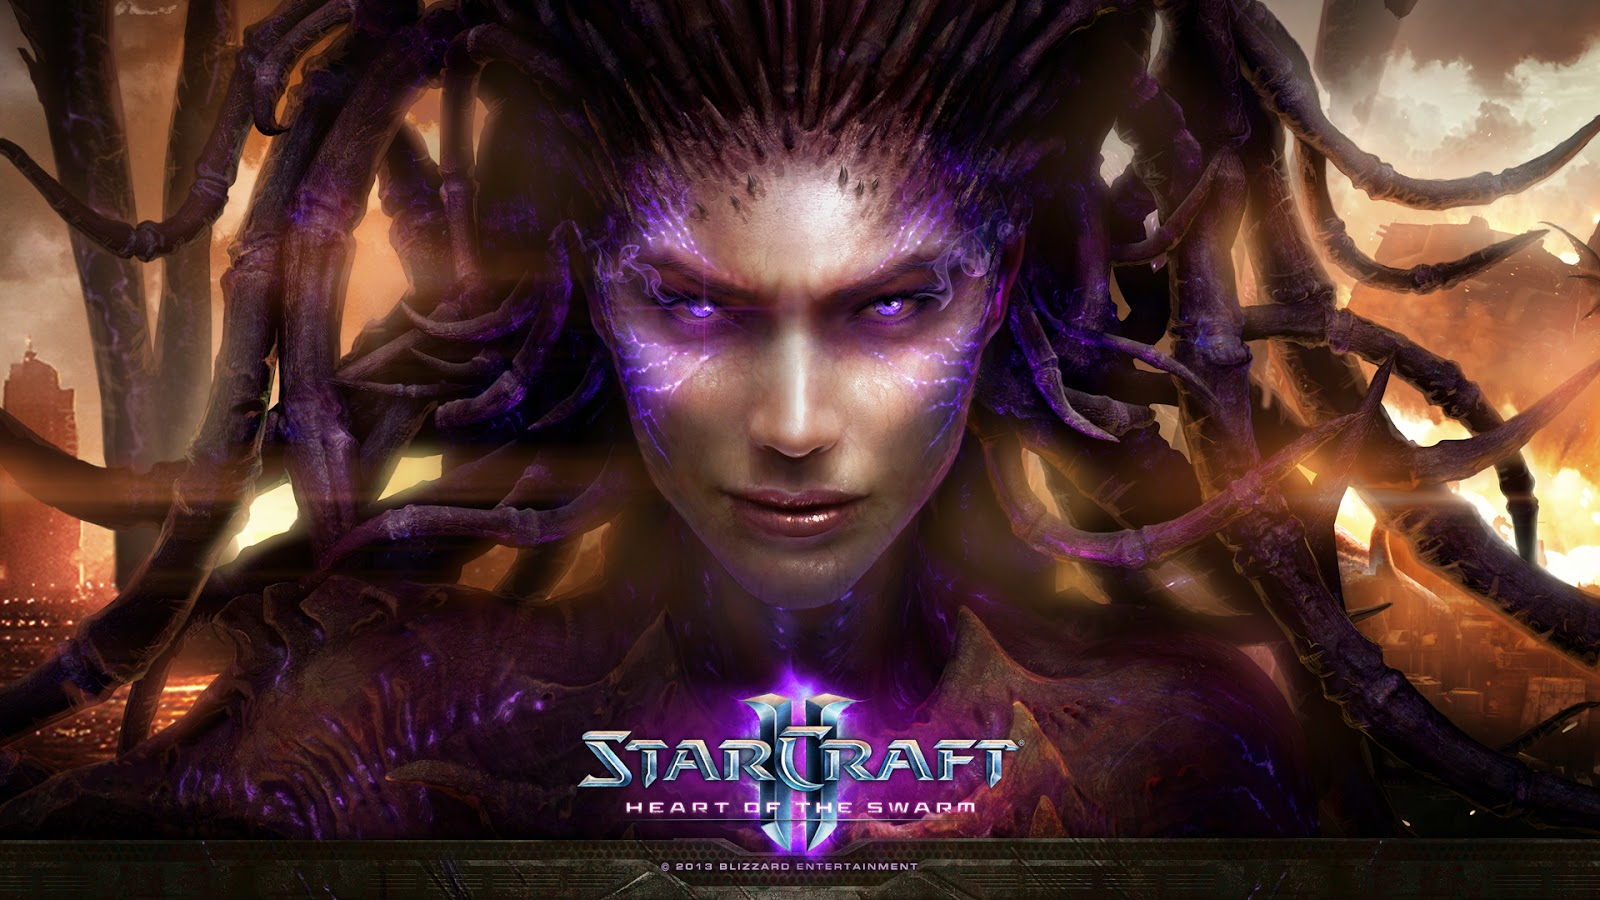 Libros De Starcraft El Descanso Del Escriba Starcraft Ii Heart Of The Swarm